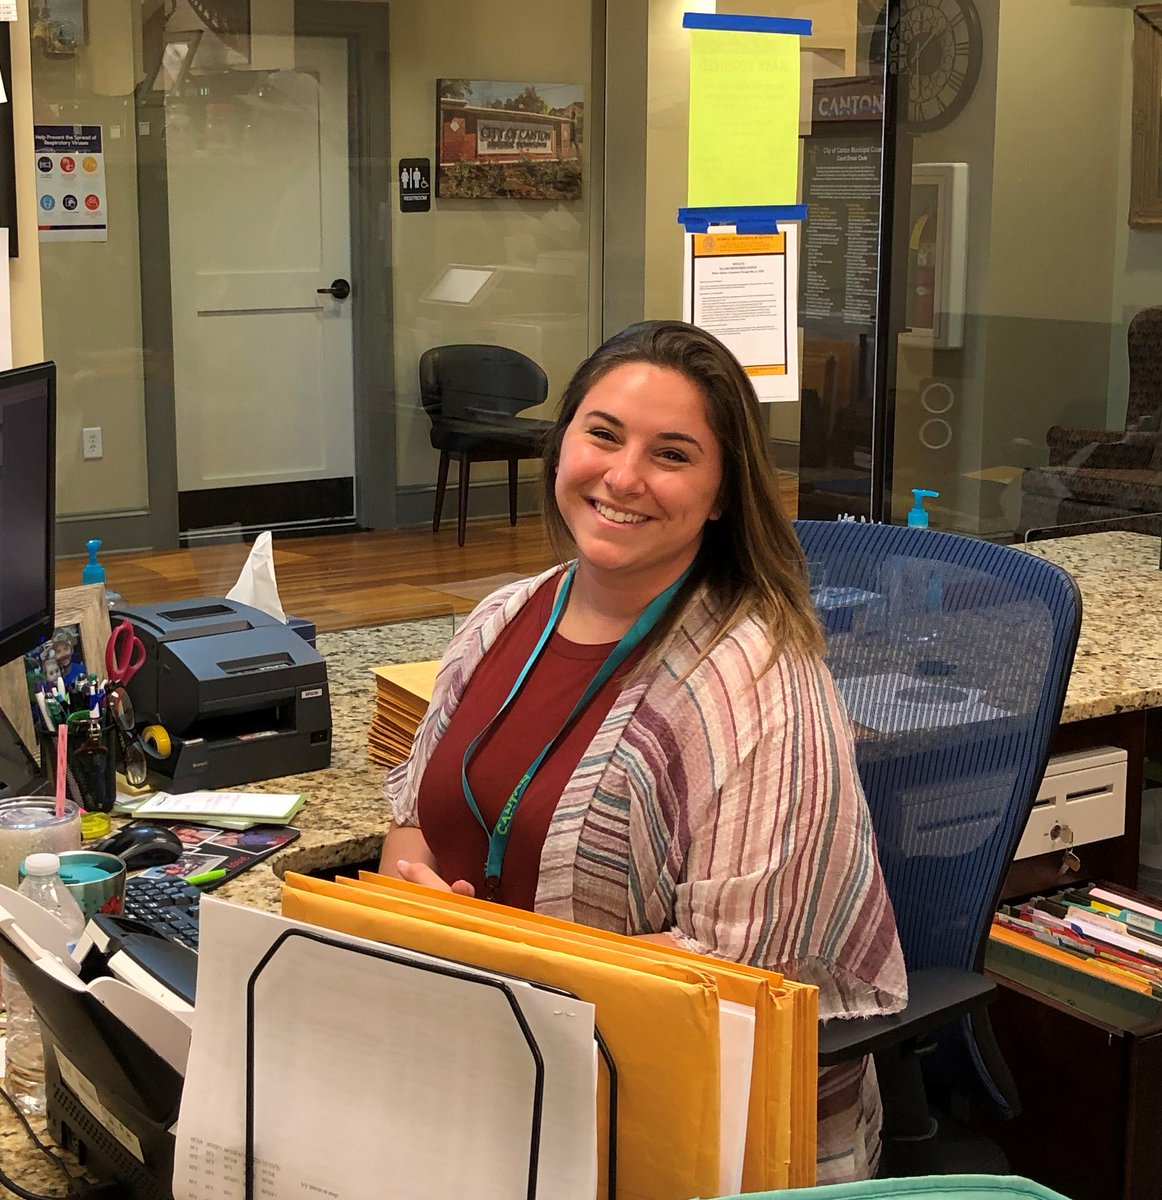 Our #TeamworkTuesday salute goes to Christine Davis (2019), a clerk in our Municipal Court.  Christine has been with the City for a year and brings a smile to work each day. #coolestsmalltowninamerica #cantonga